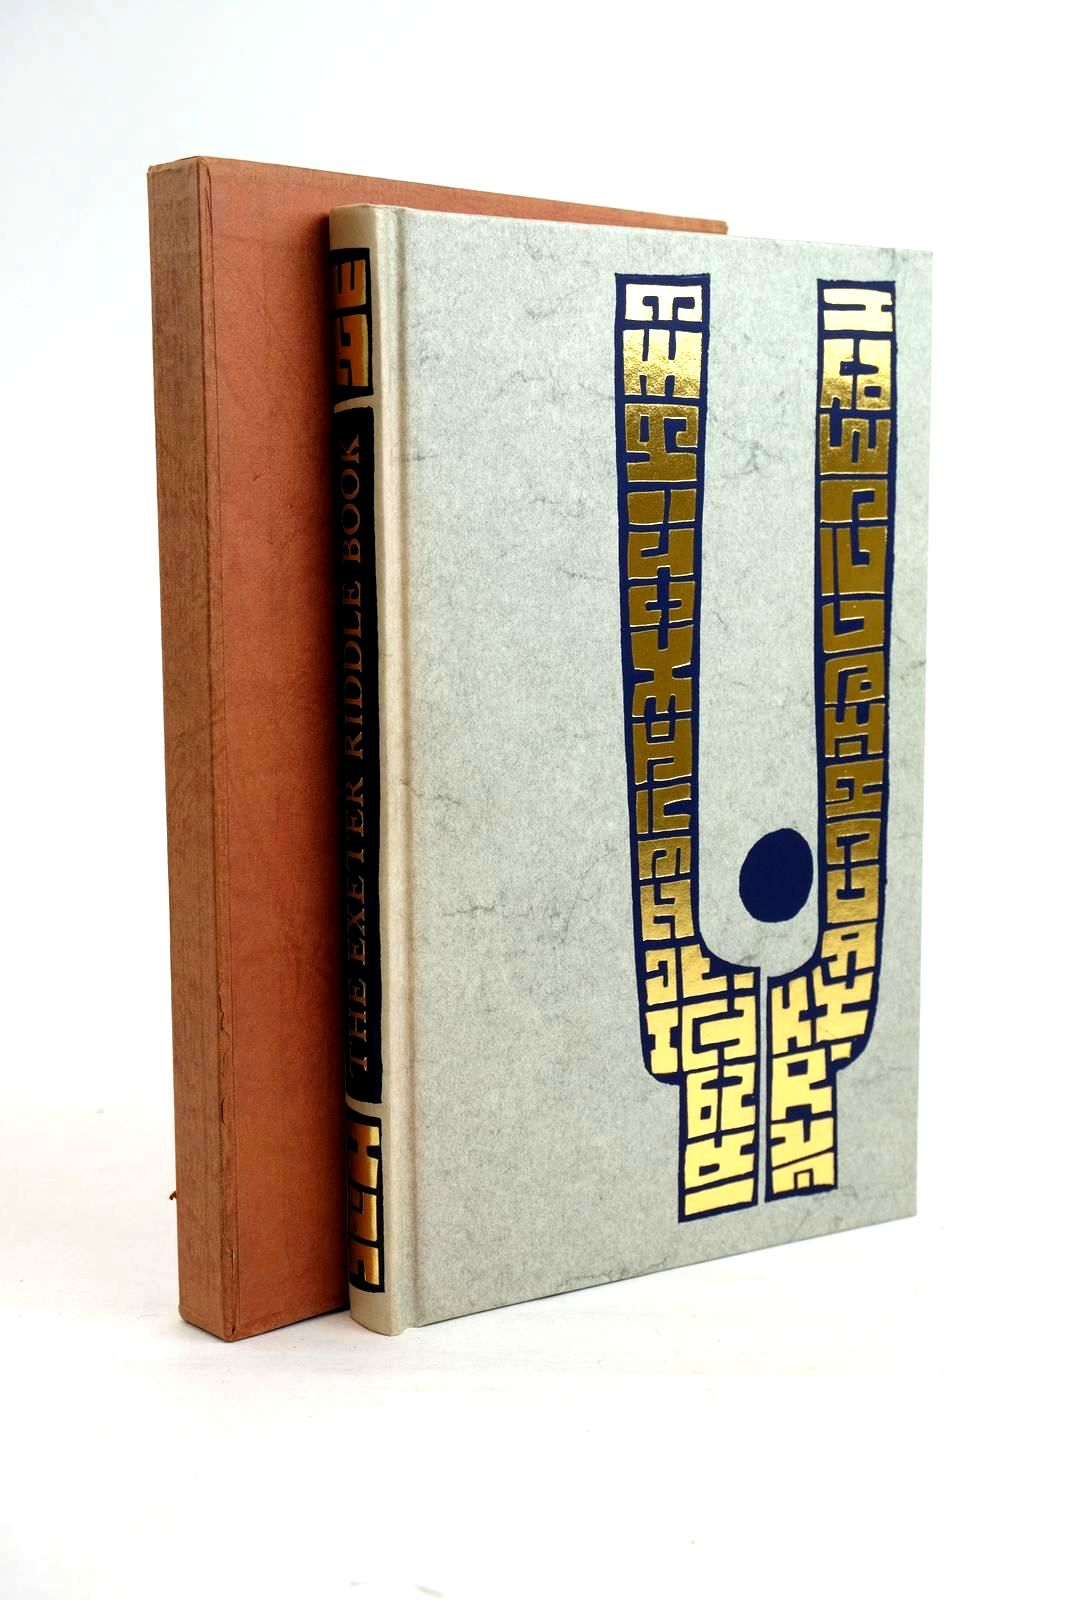 Photo of THE EXETER RIDDLE BOOK written by Crossley-Holland, Kevin illustrated by Burnett, Virgil published by Folio Society (STOCK CODE: 1320372)  for sale by Stella & Rose's Books